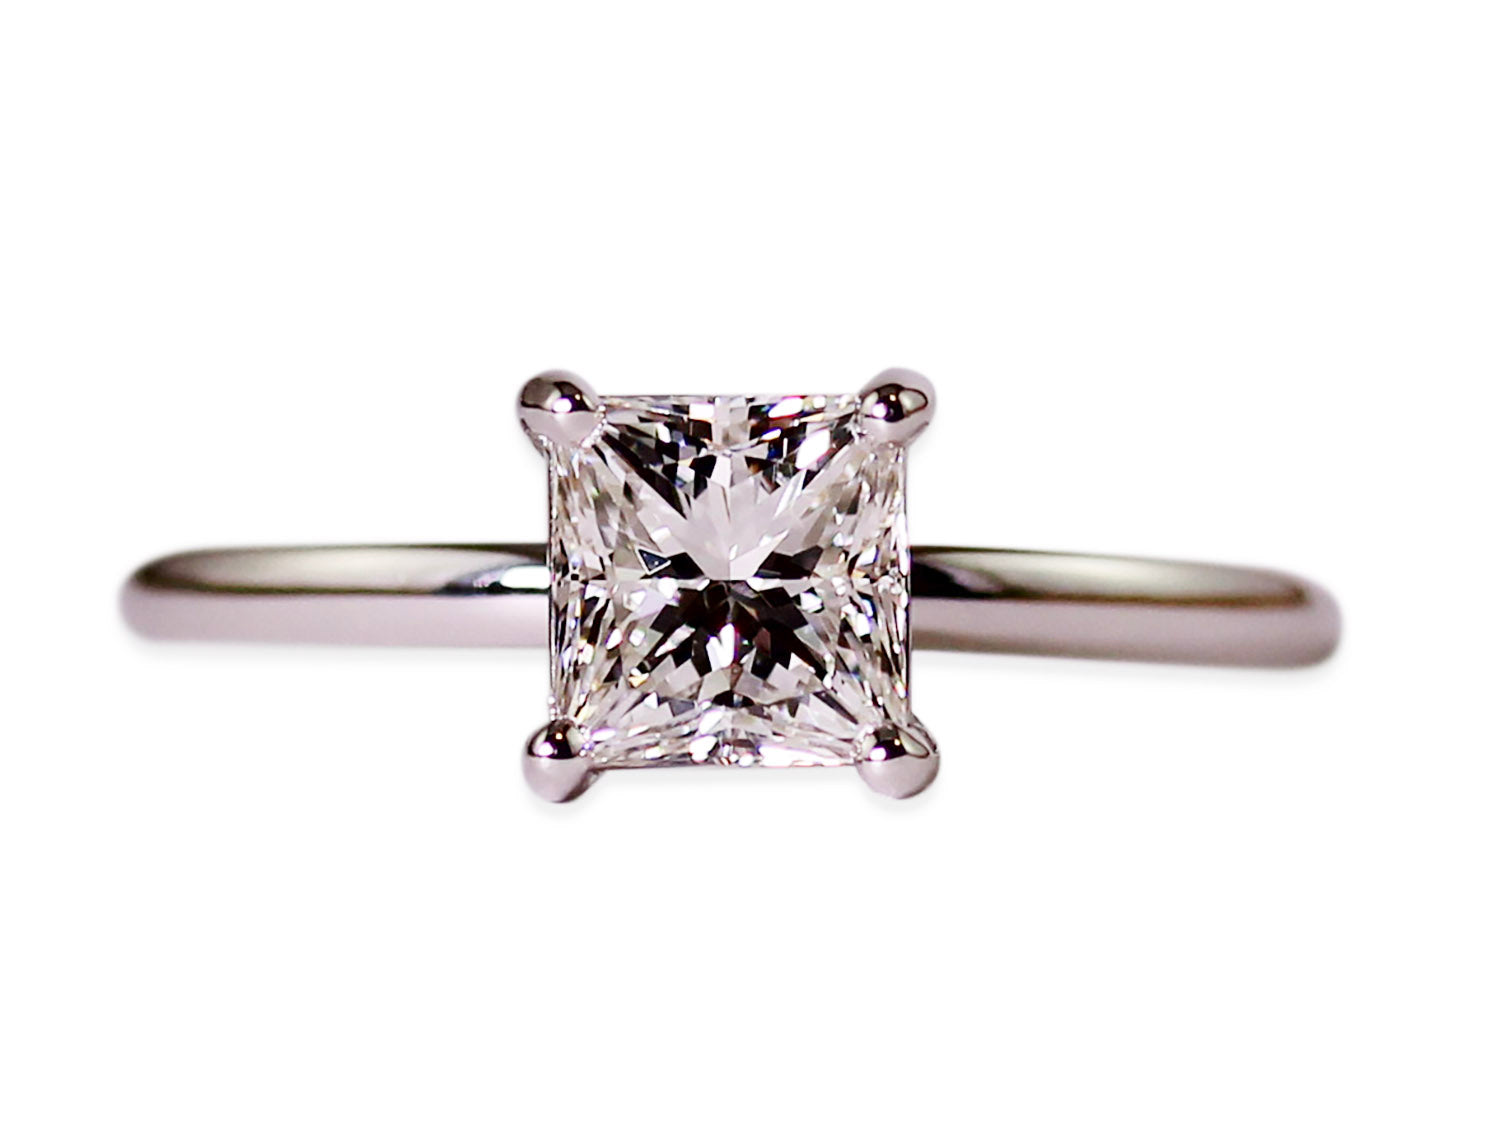 White Gold and Solitaire Diamond Engagement Ring